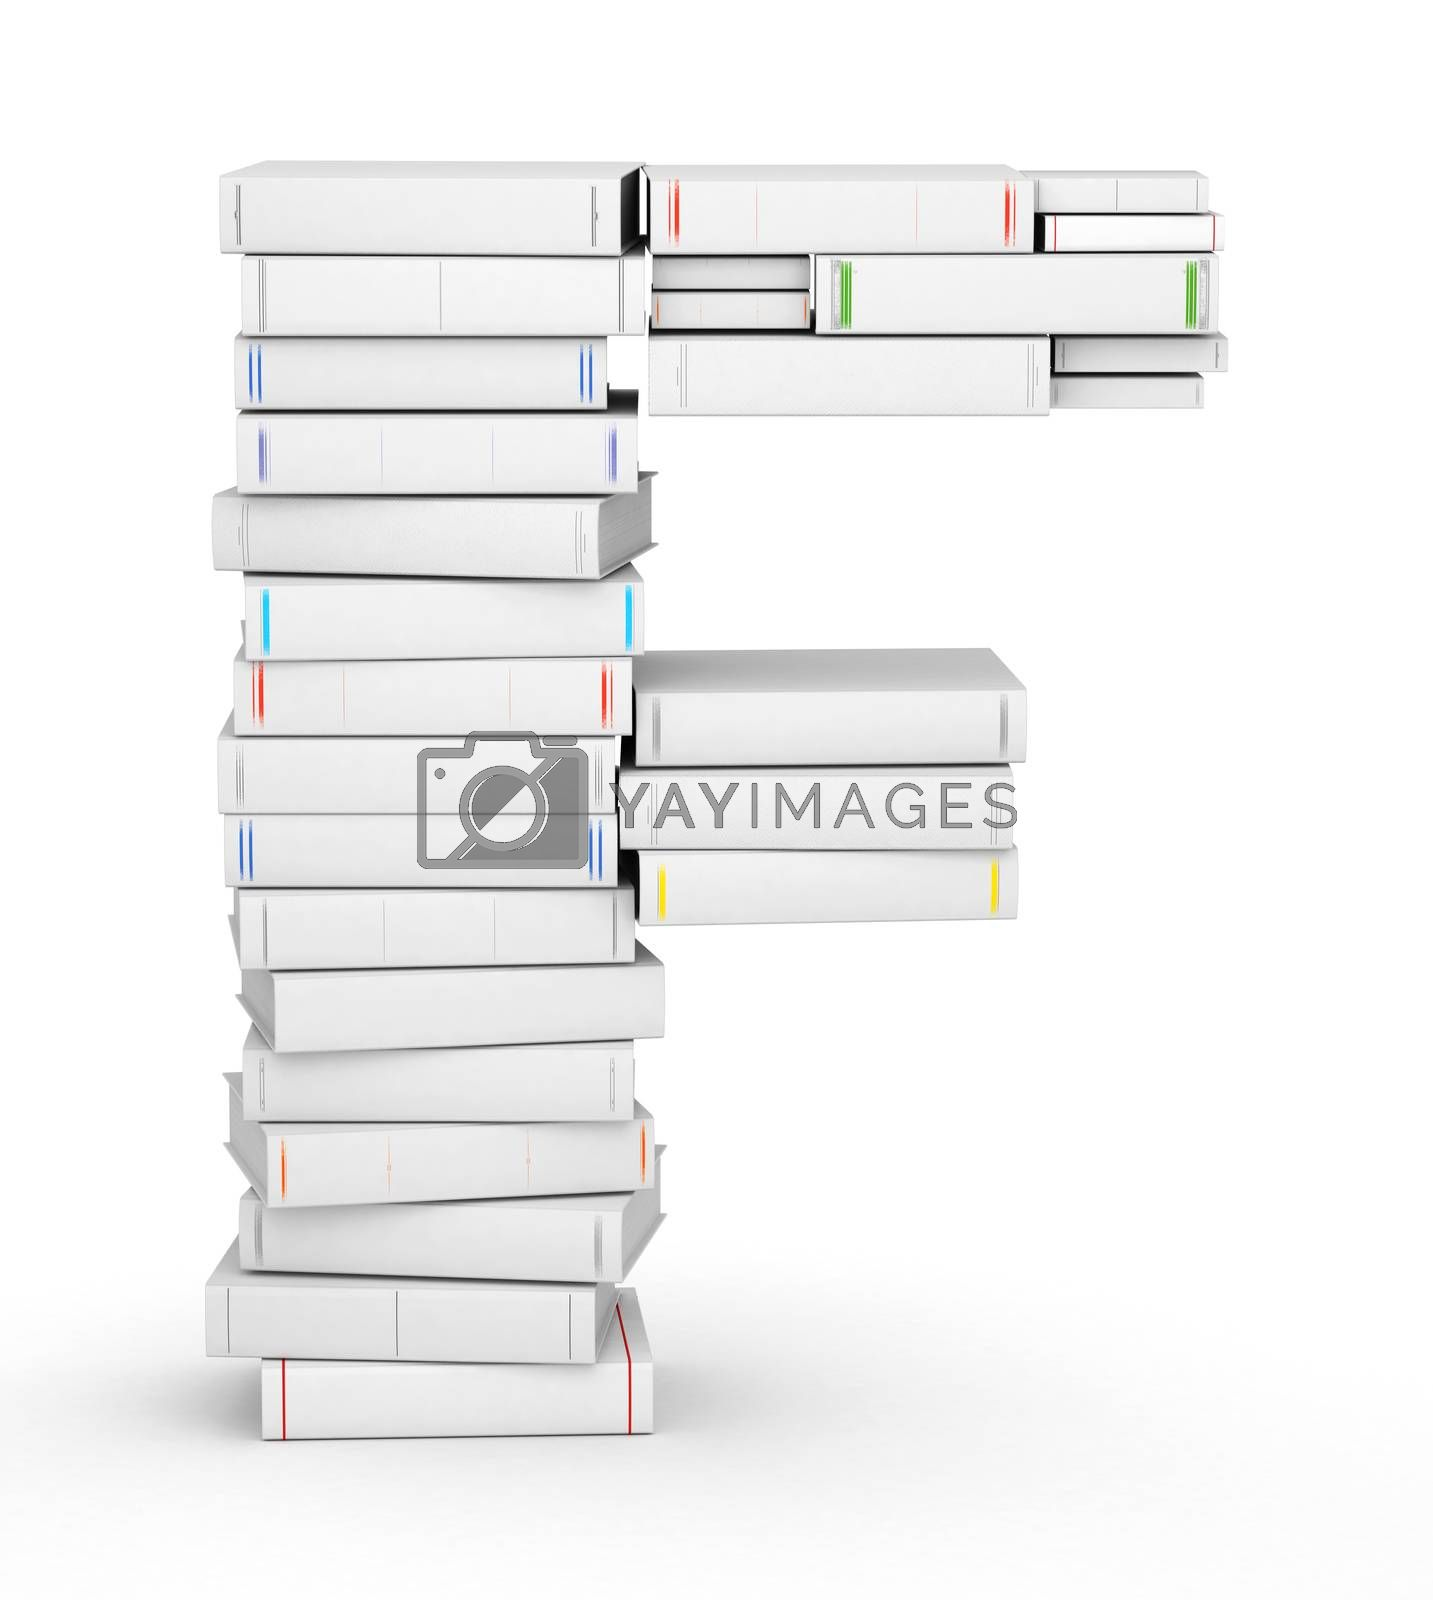 Royalty free image of Letter F, stacked from blank books by iunewind